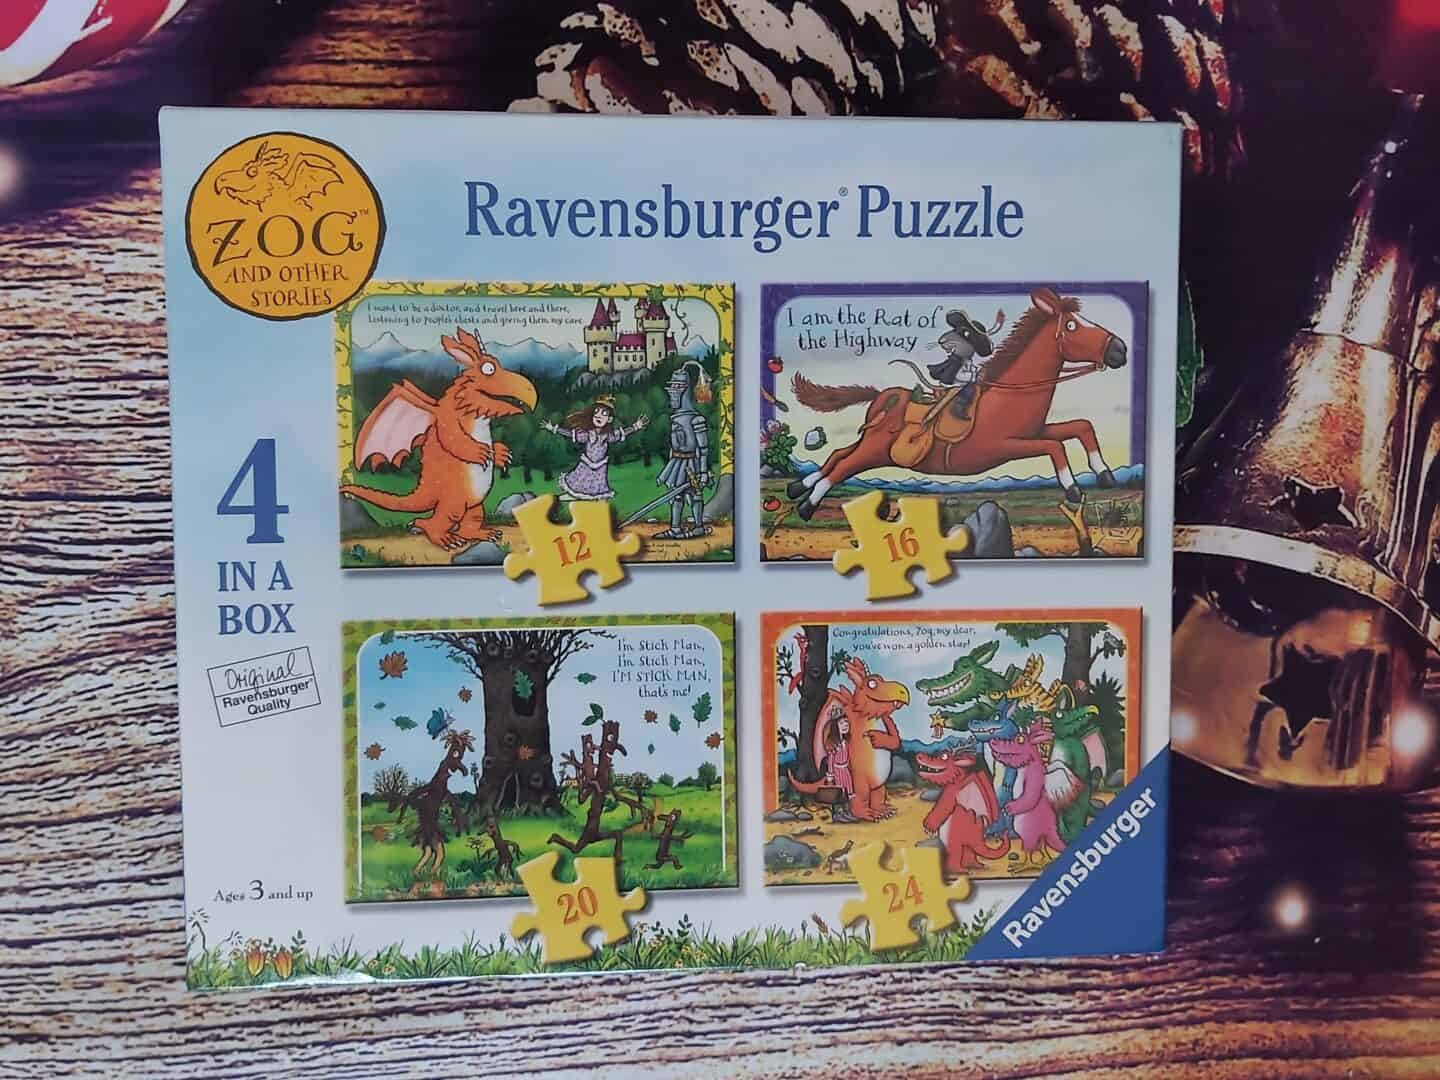 Zog and other stories box of 4 jigsaw puzzles